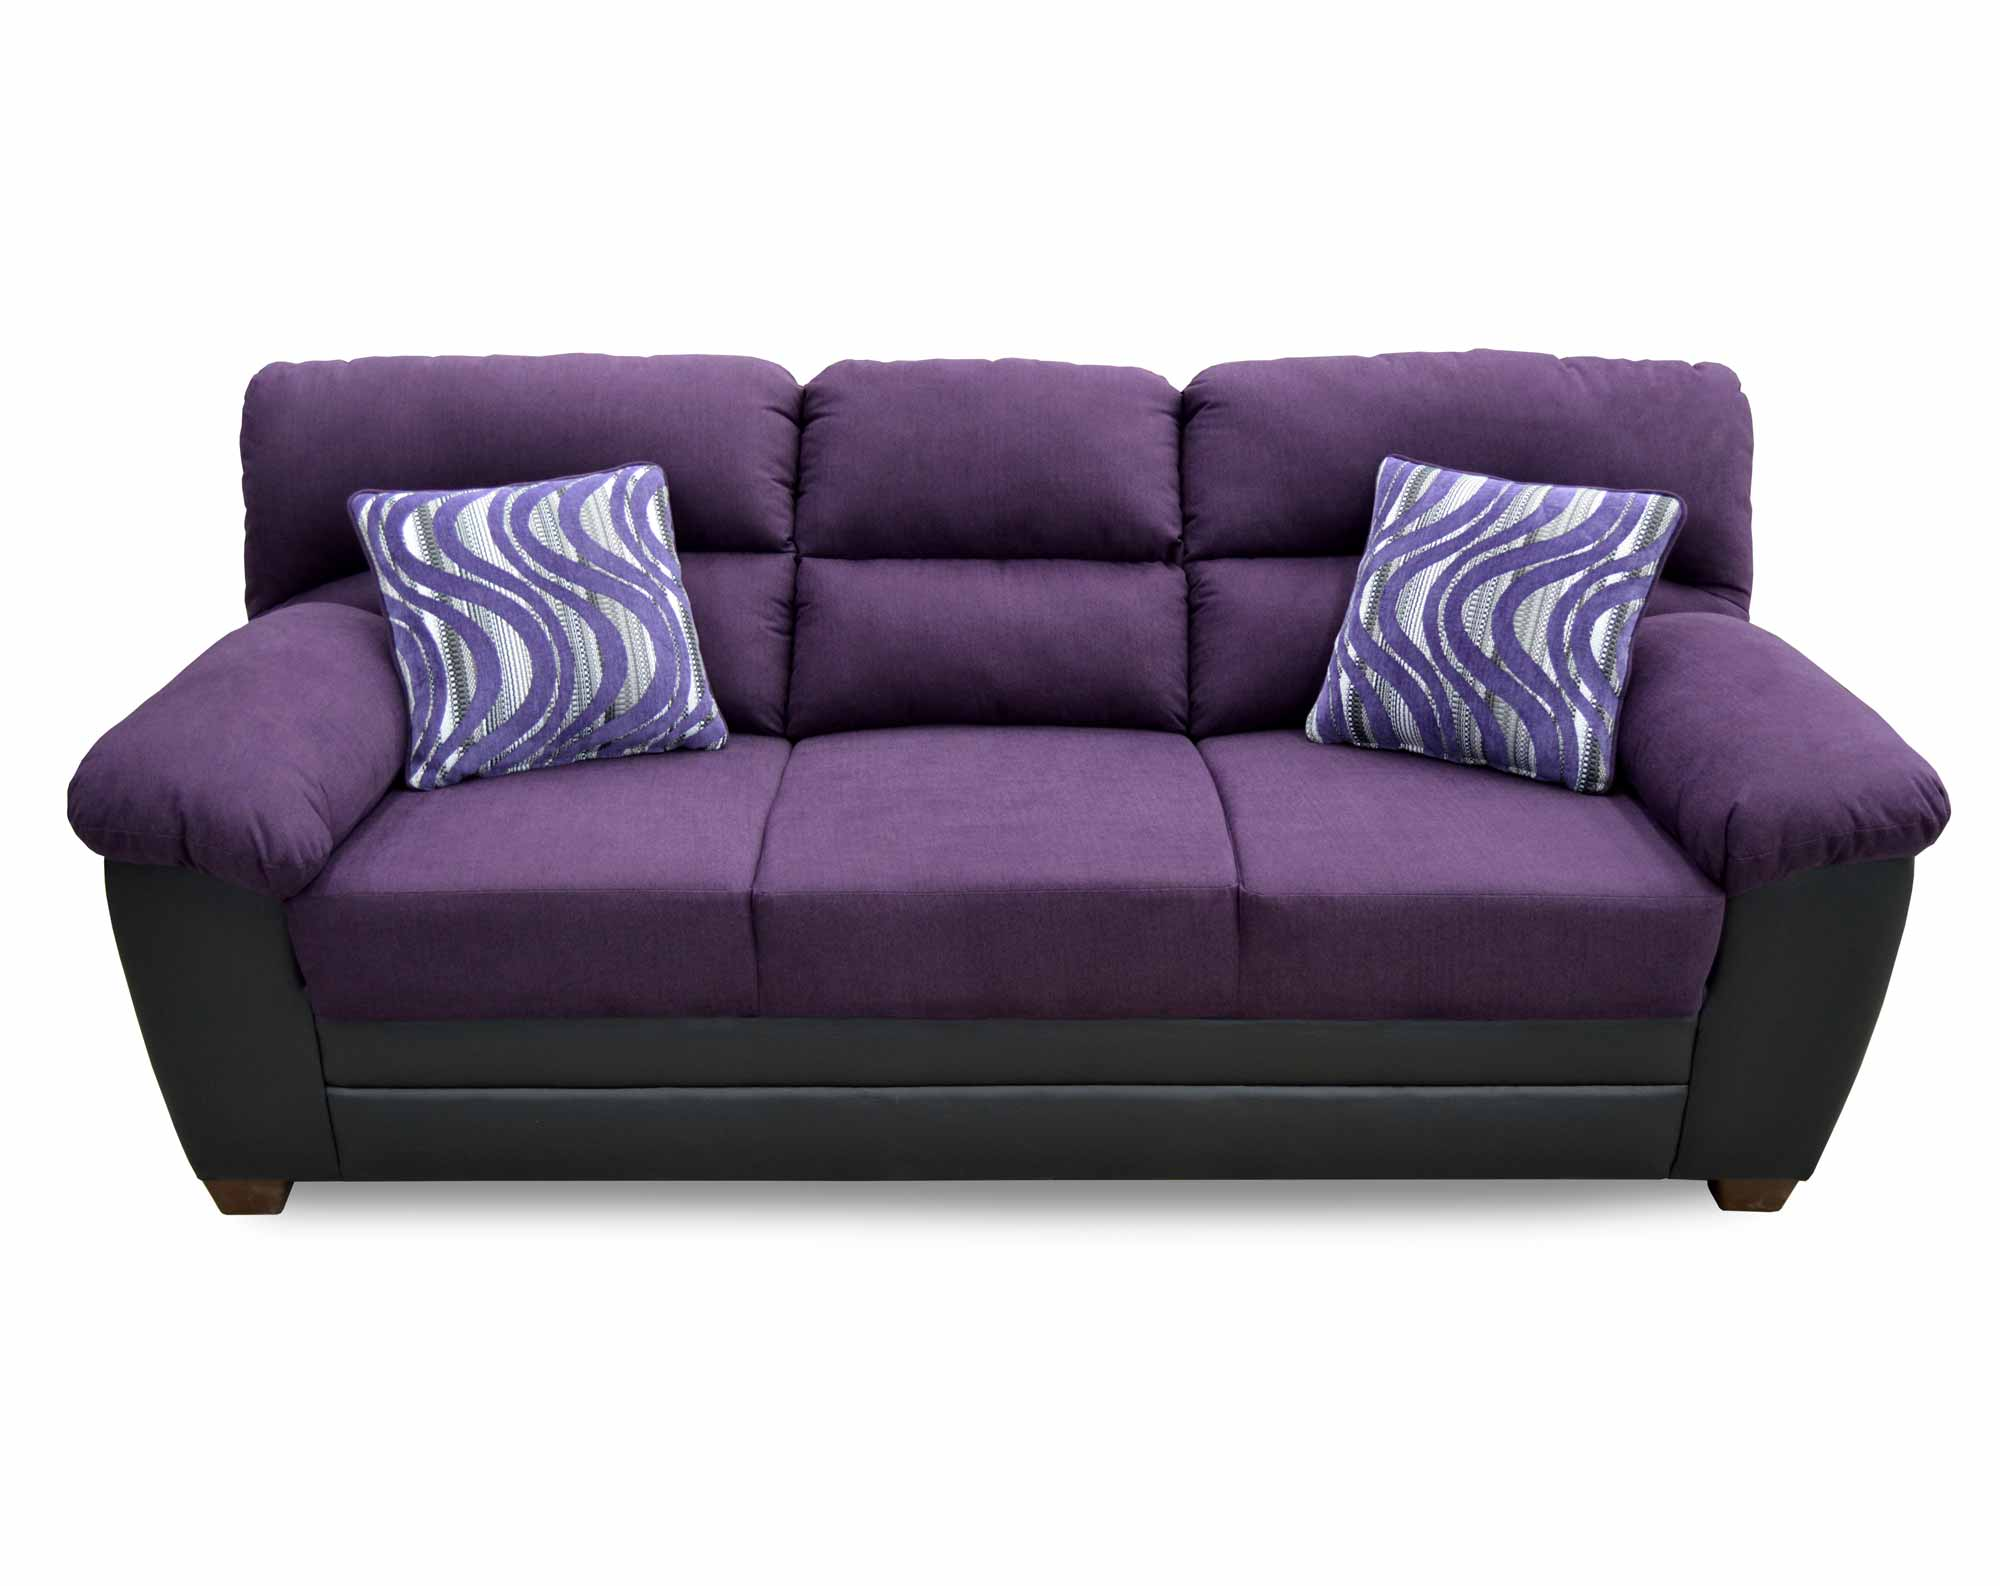 Peralta Purple Sofa